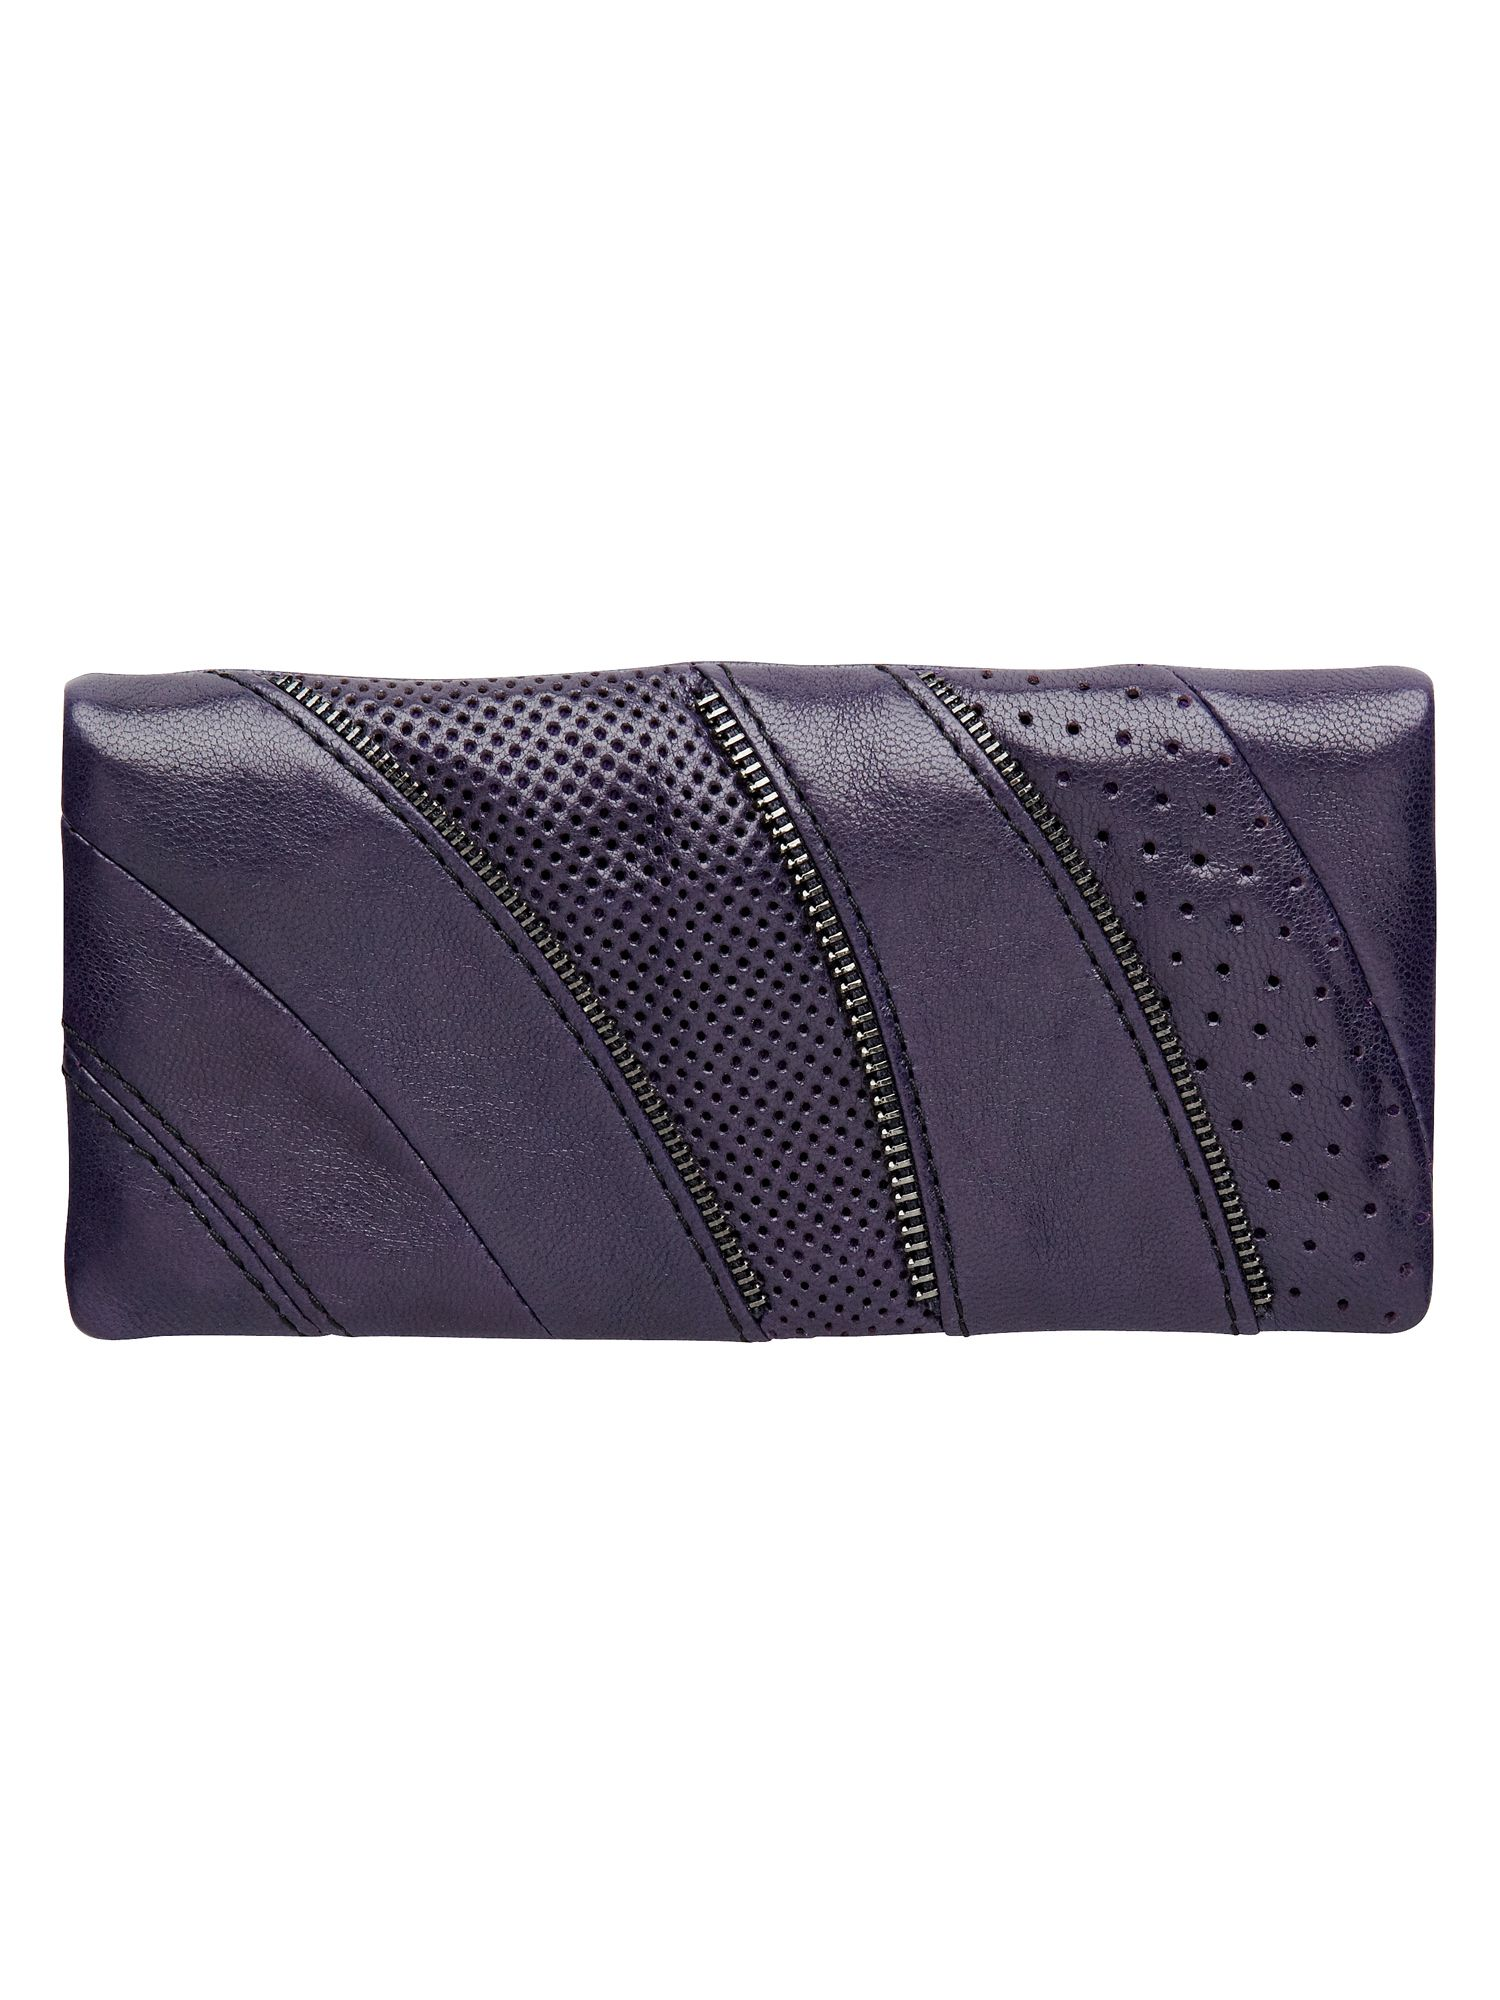 Mimco Zipped lady wallet